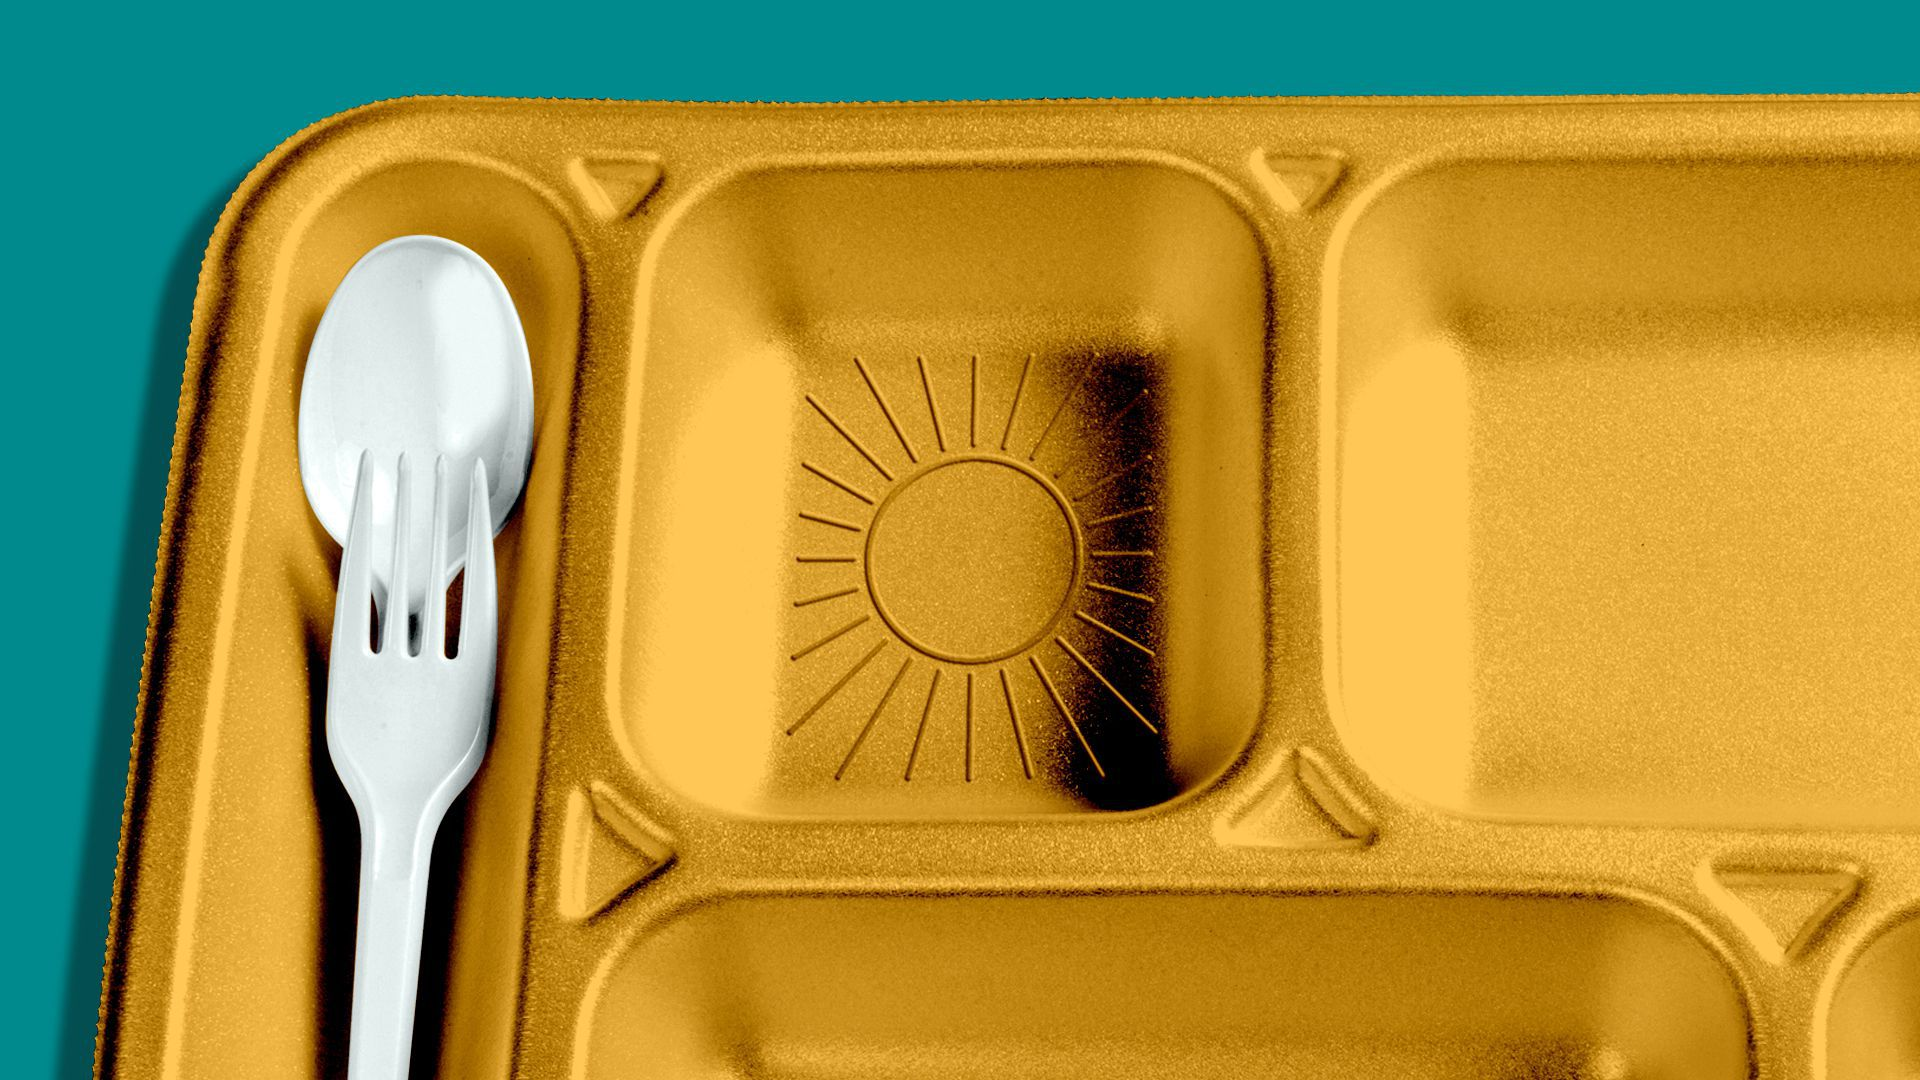 Illustration of a school lunch tray with a sun embossed into it.